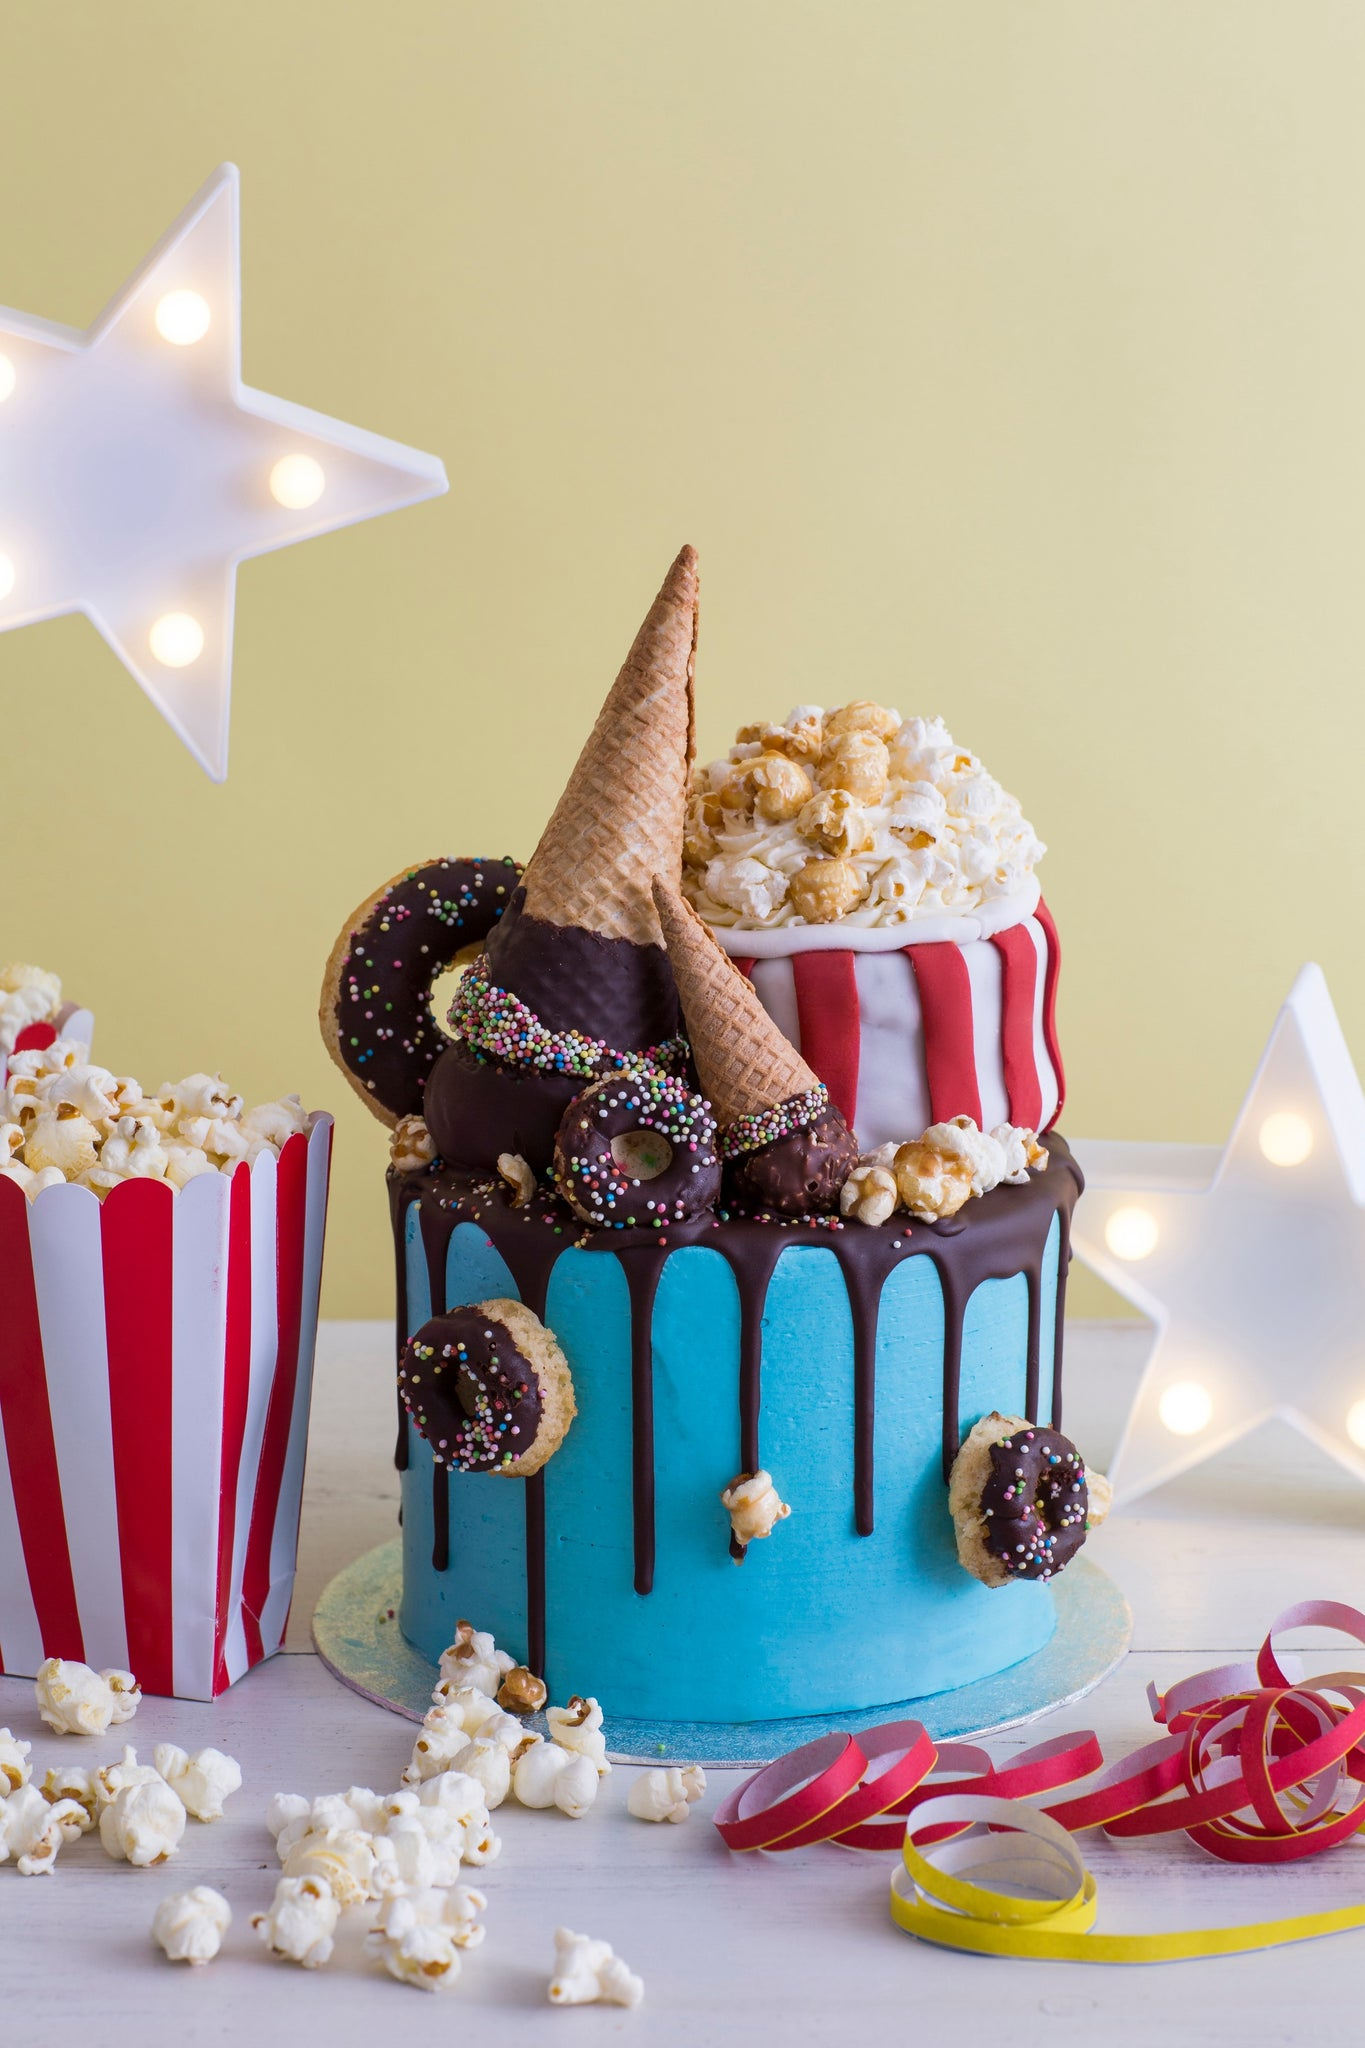 Netflix Movie Themed Birthday Cake London